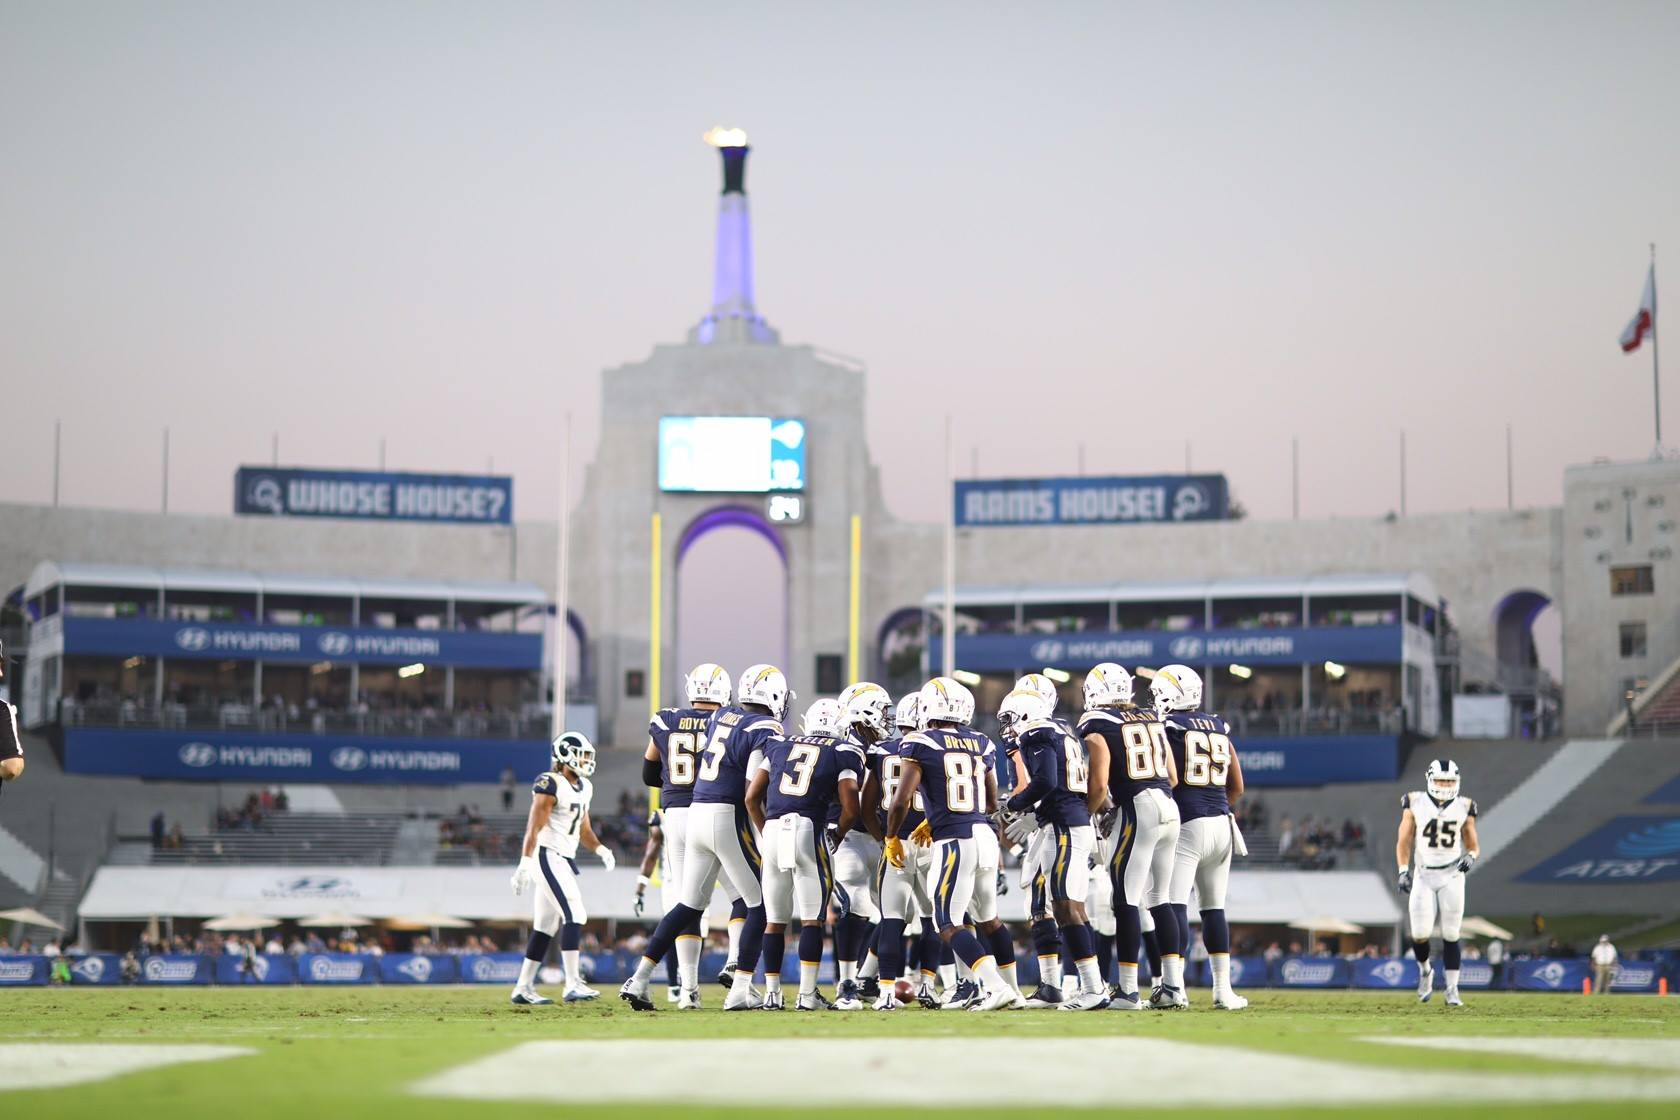 Chargers Defeat Rams In Preseason Fight For La To Avoid